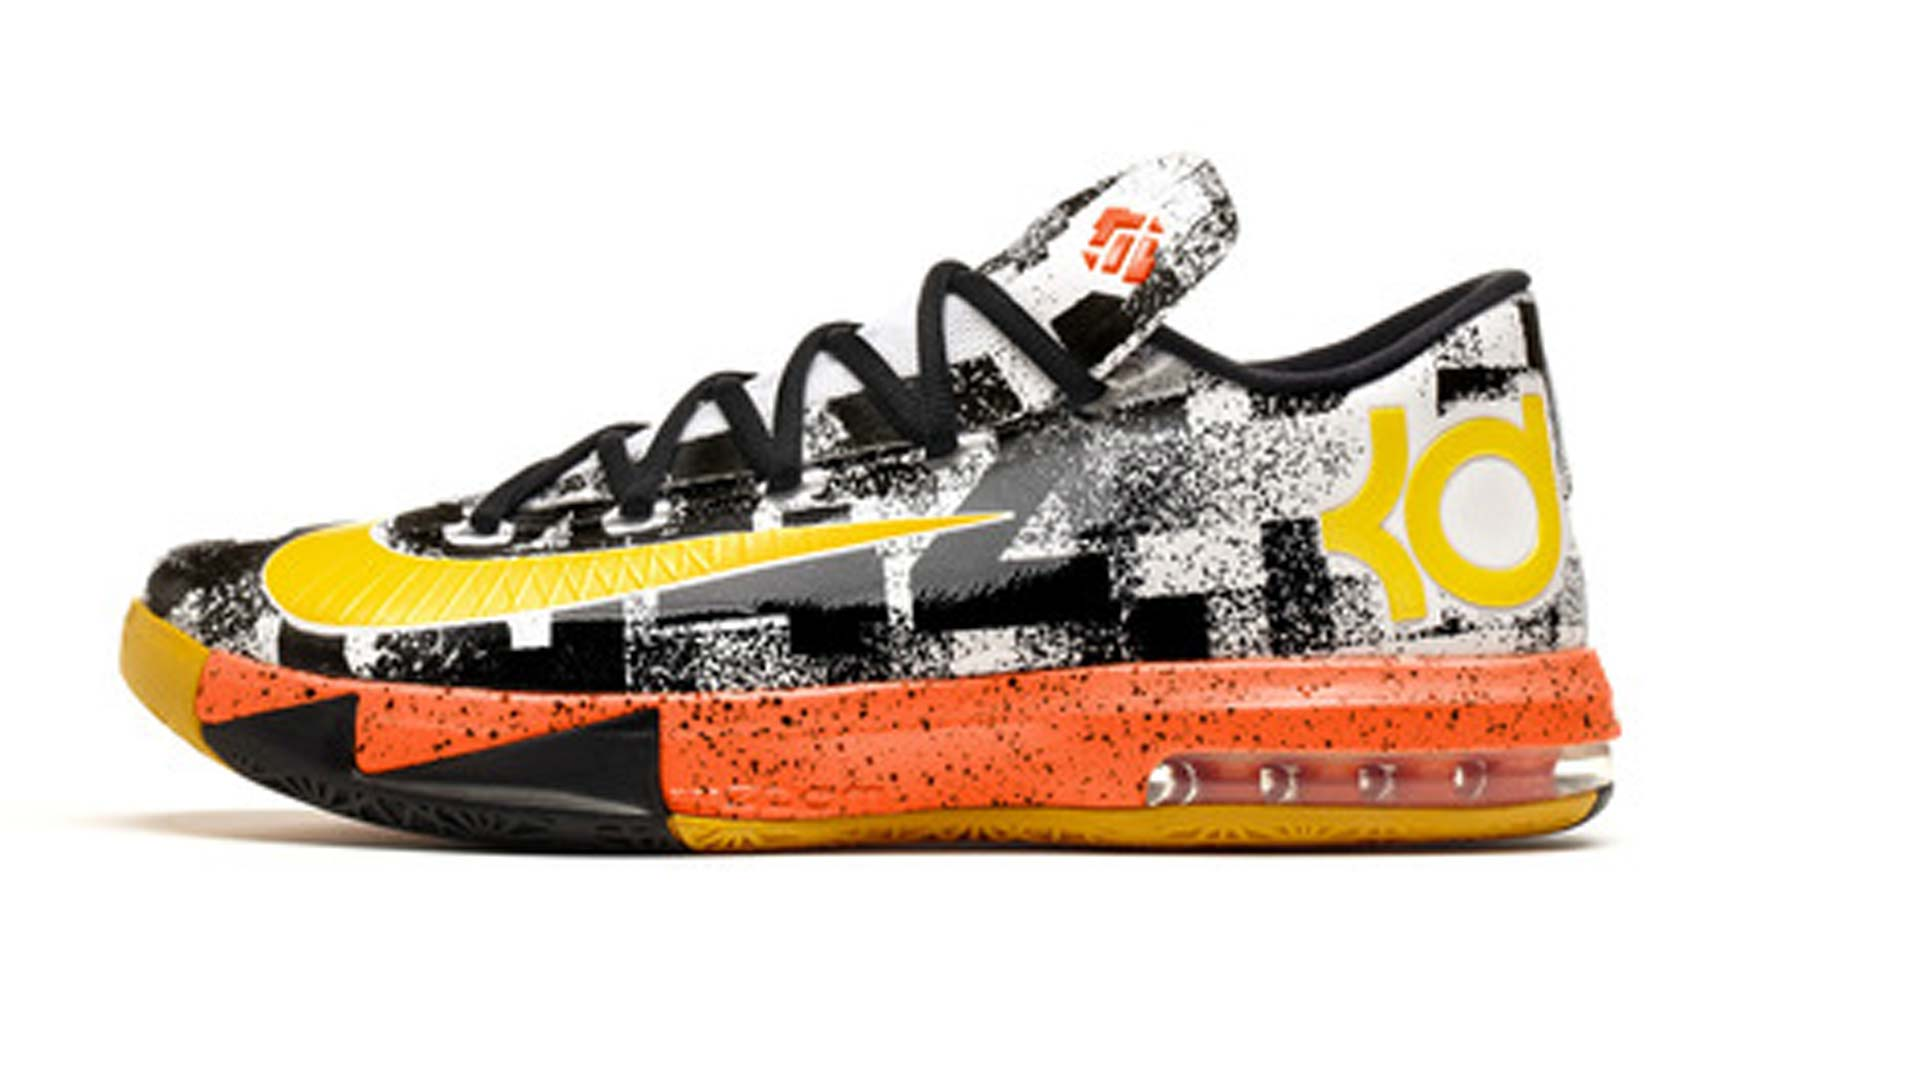 Kevin Durant's MVP shoes from Nike are wild